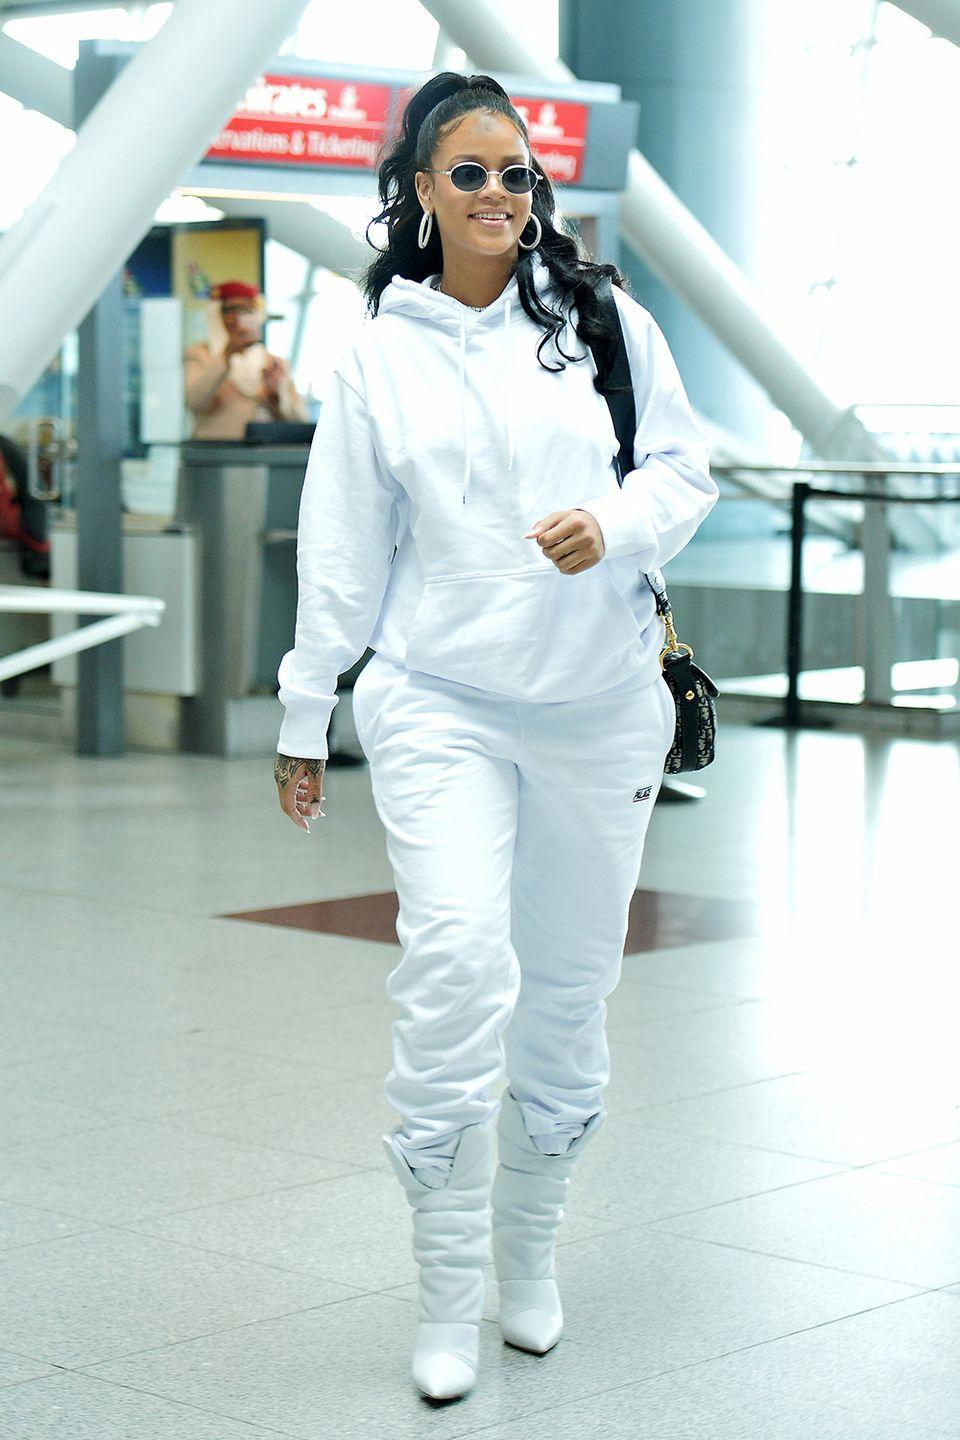 <p>In white Palace sweats, Off-White boots, retro rounded sunglasses, and hoop earrings at JFK airport in NYC.</p>